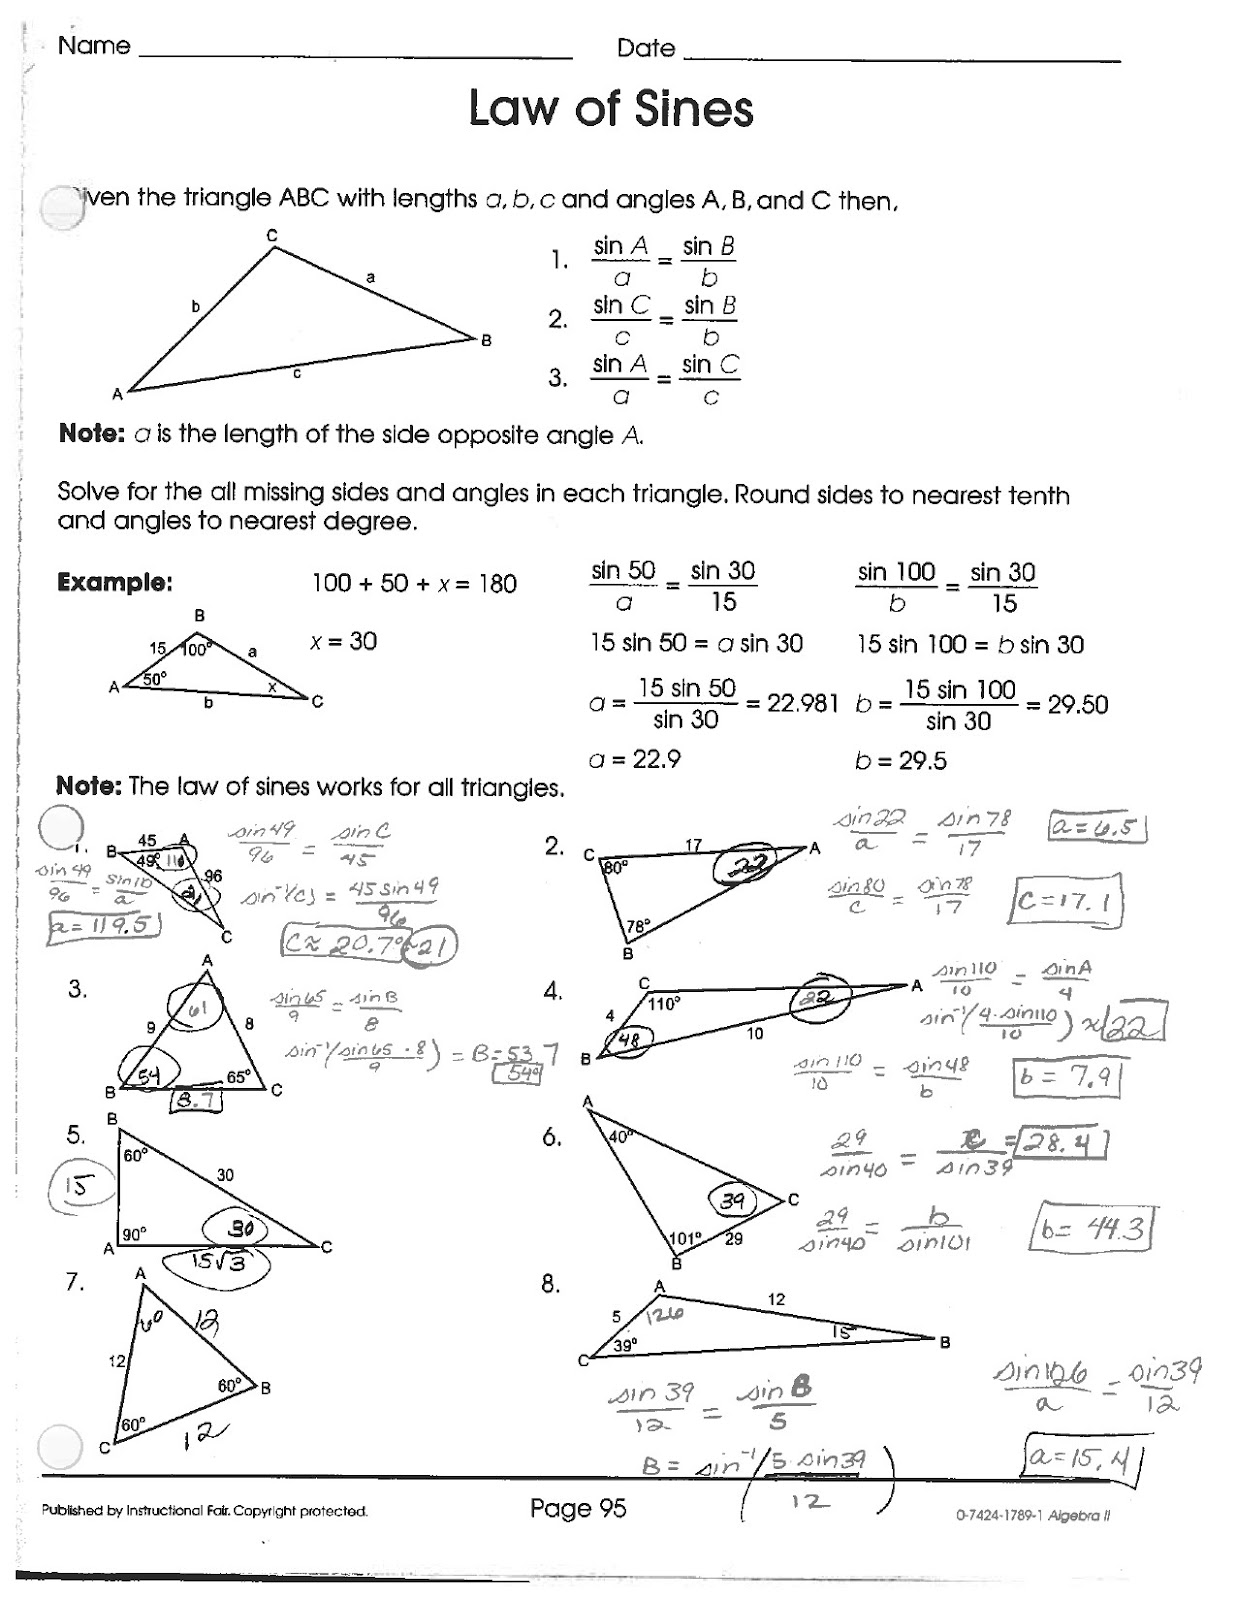 Worksheet Law Of Sines Worksheet law of sine worksheet vintagegrn math classes spring 2012 pre calc laws sines and cosines